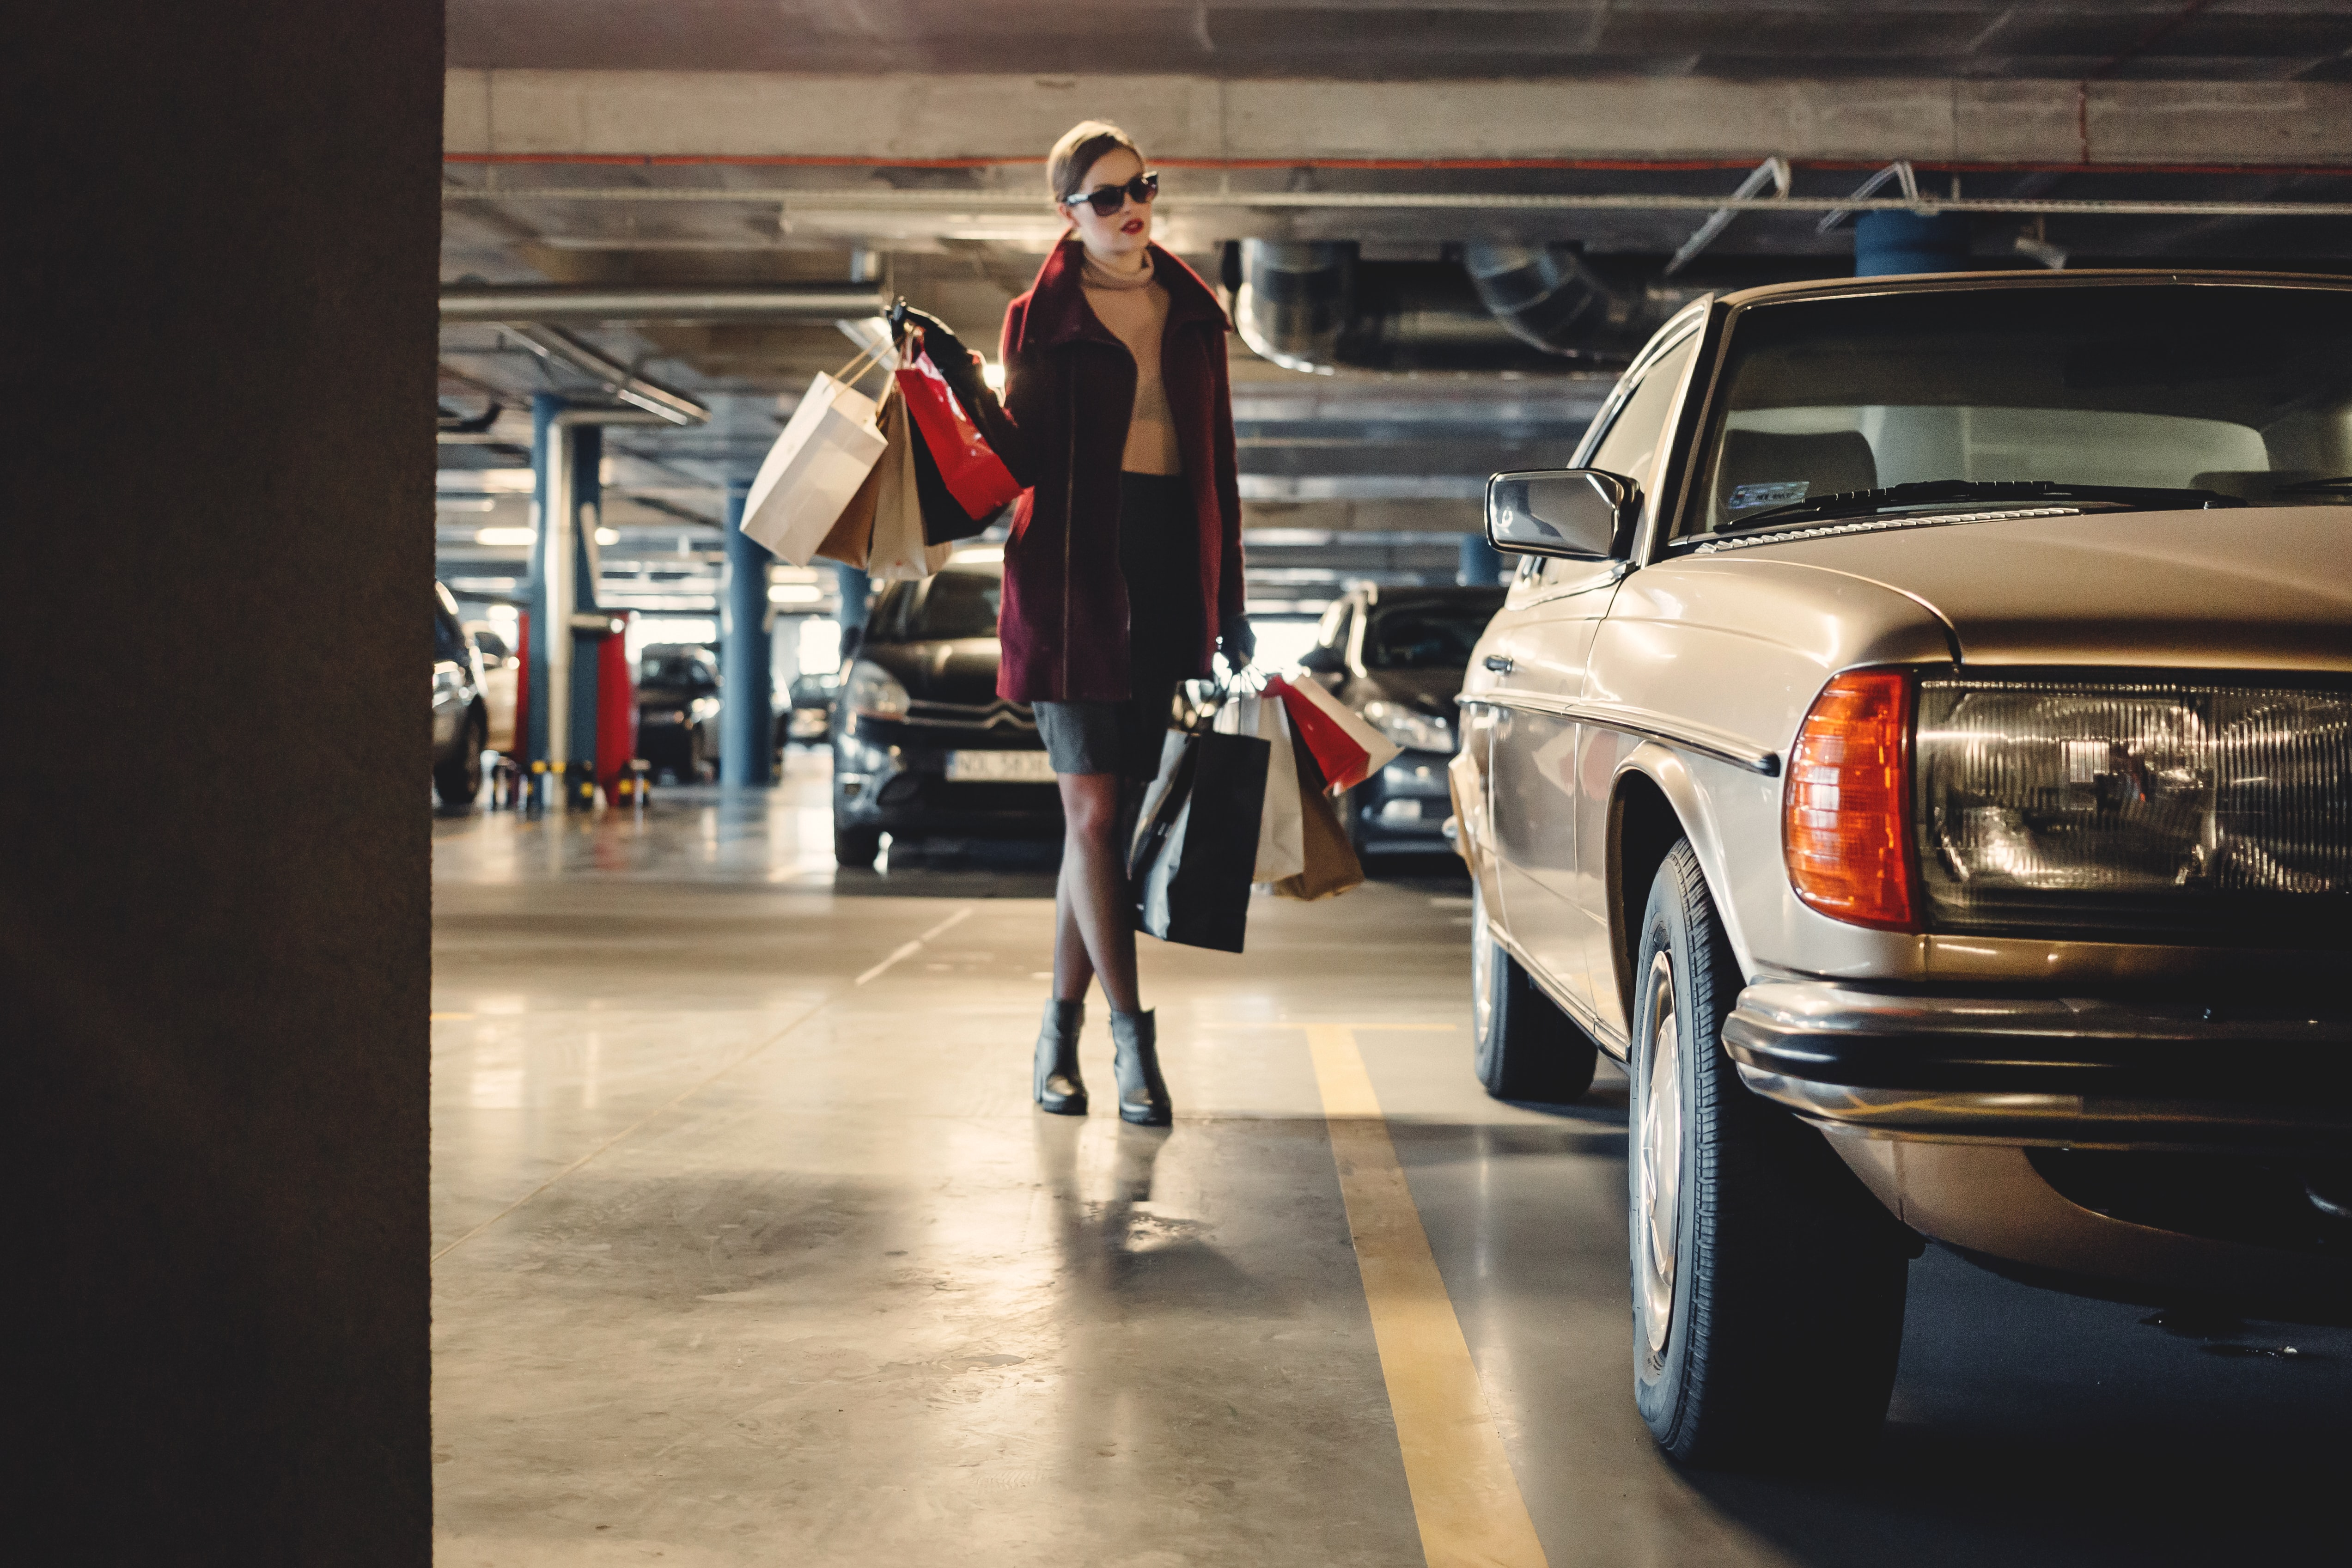 Woman with many shopping bags in sunglasses in a parking garage near a beige car